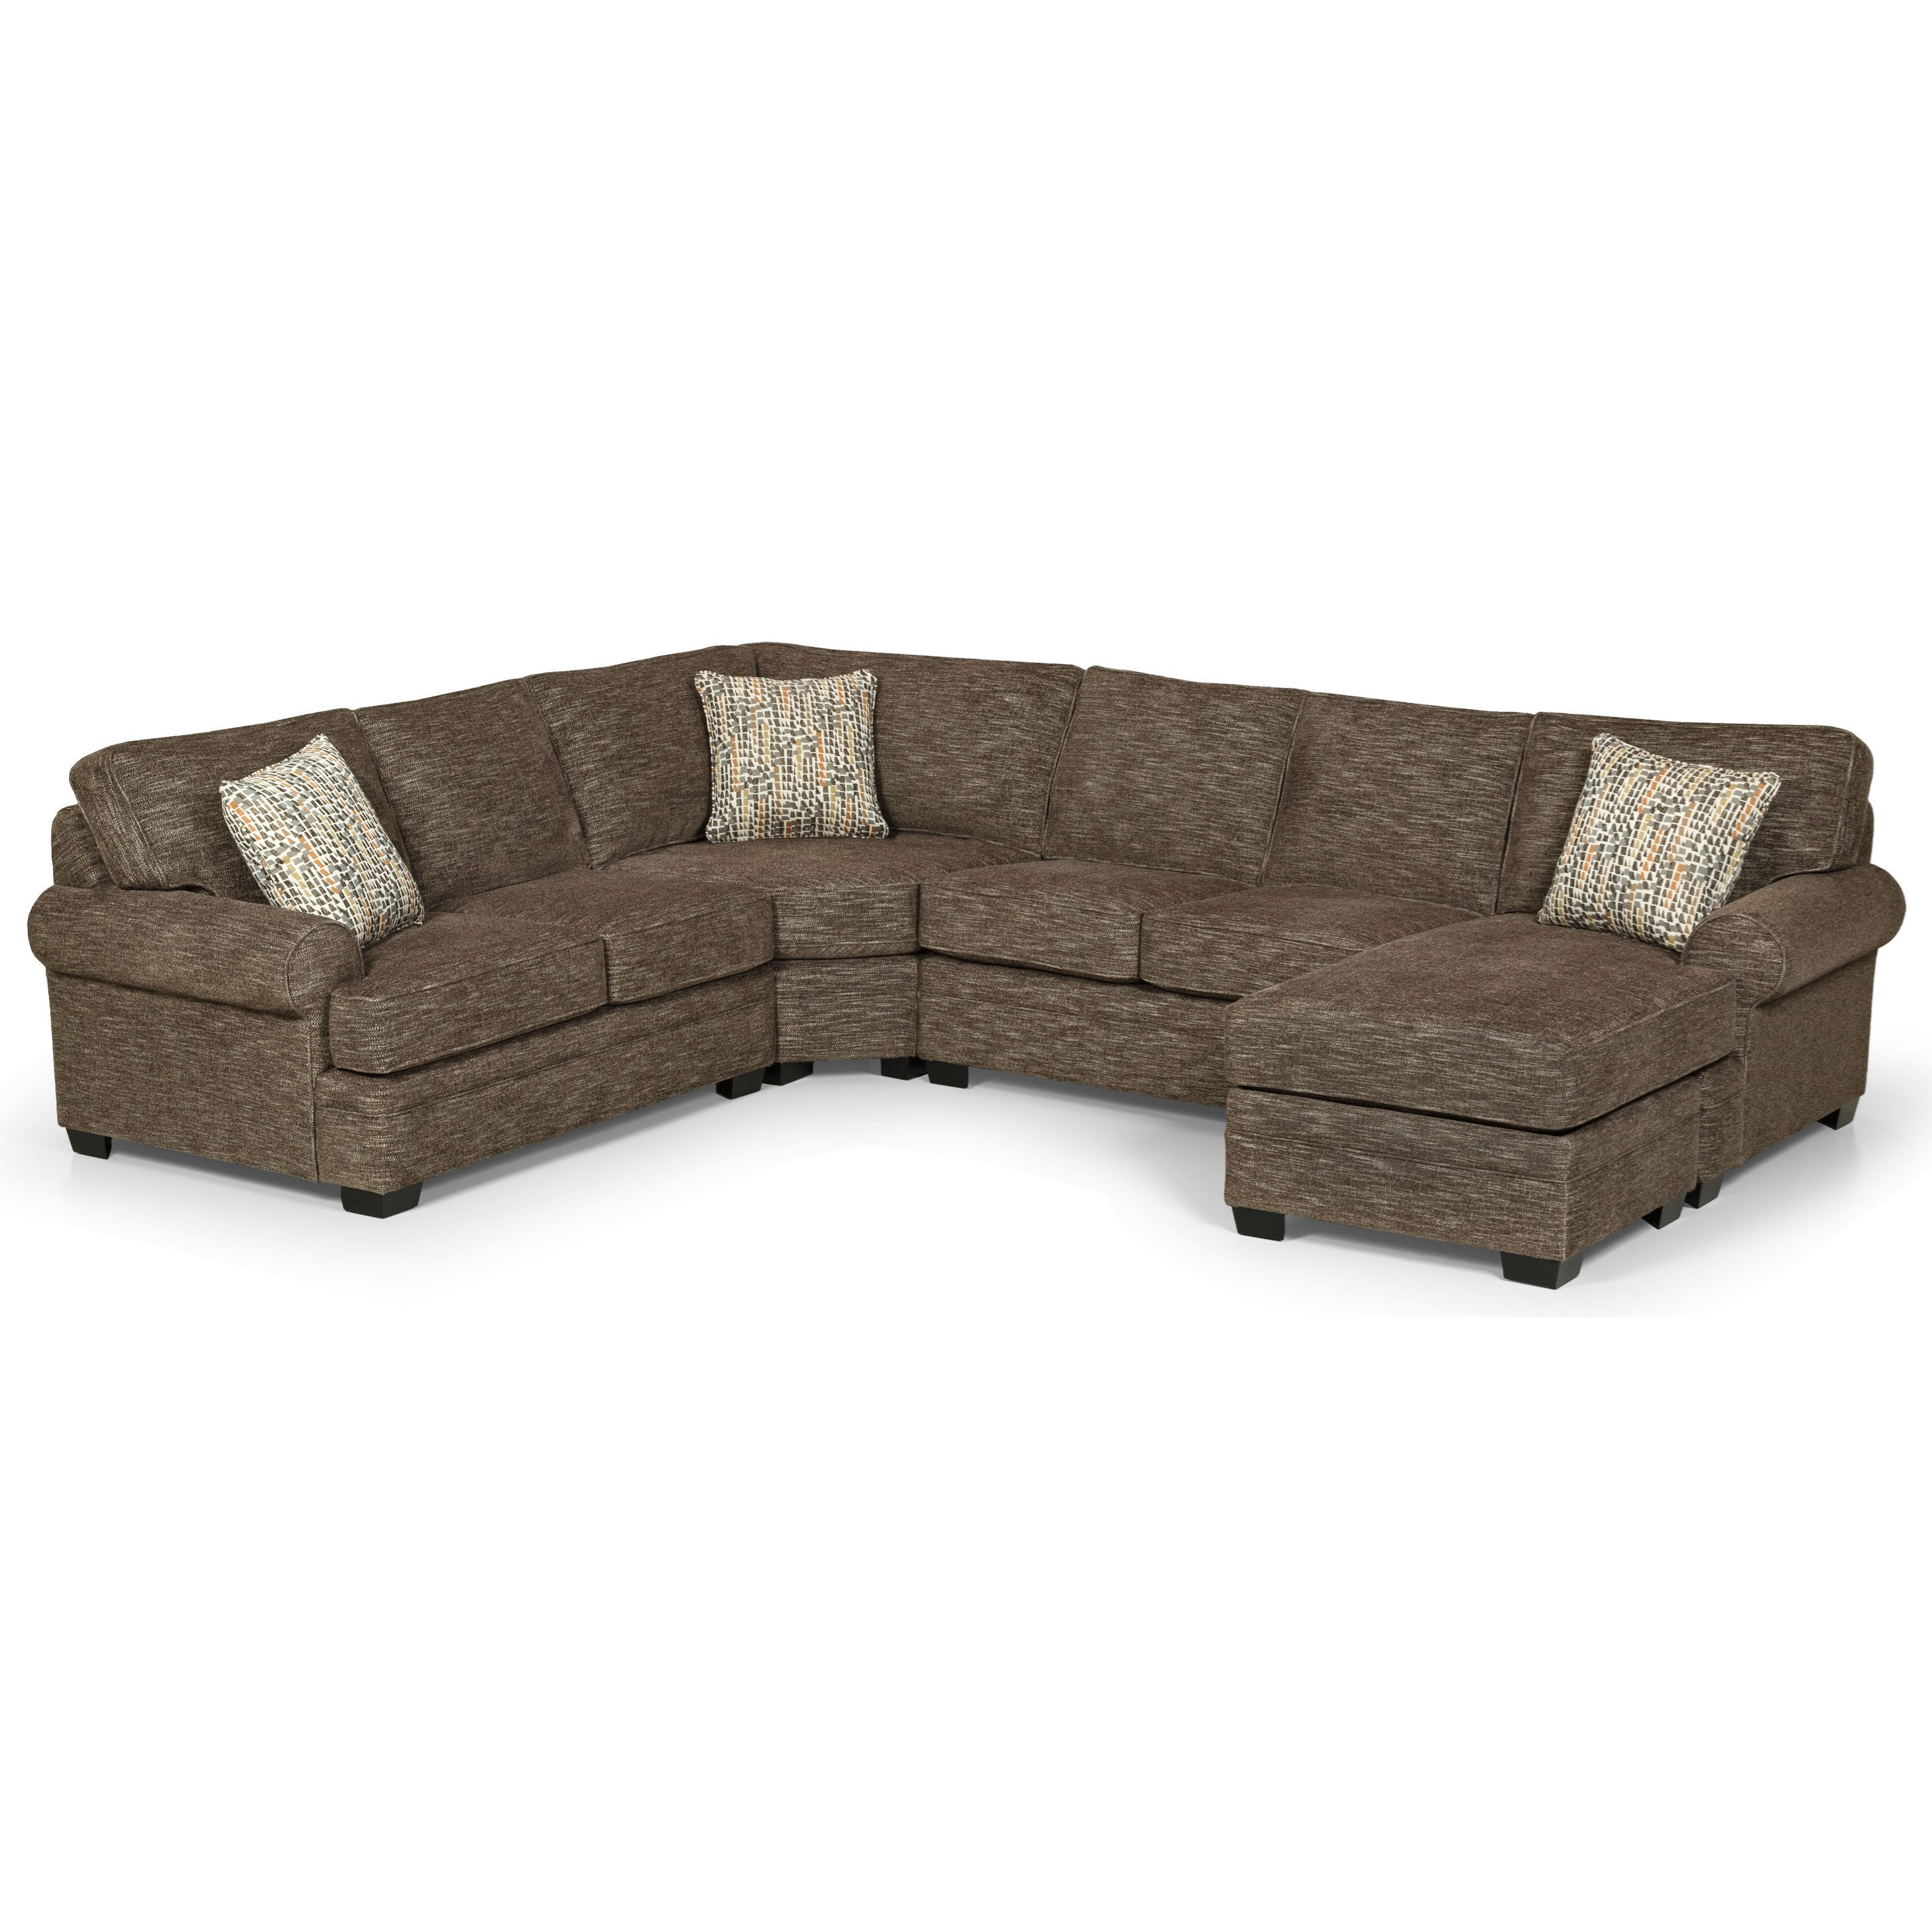 Sunset Home 422 Casual 5 Seat Sectional Sofa With RAF Chaise Lounge